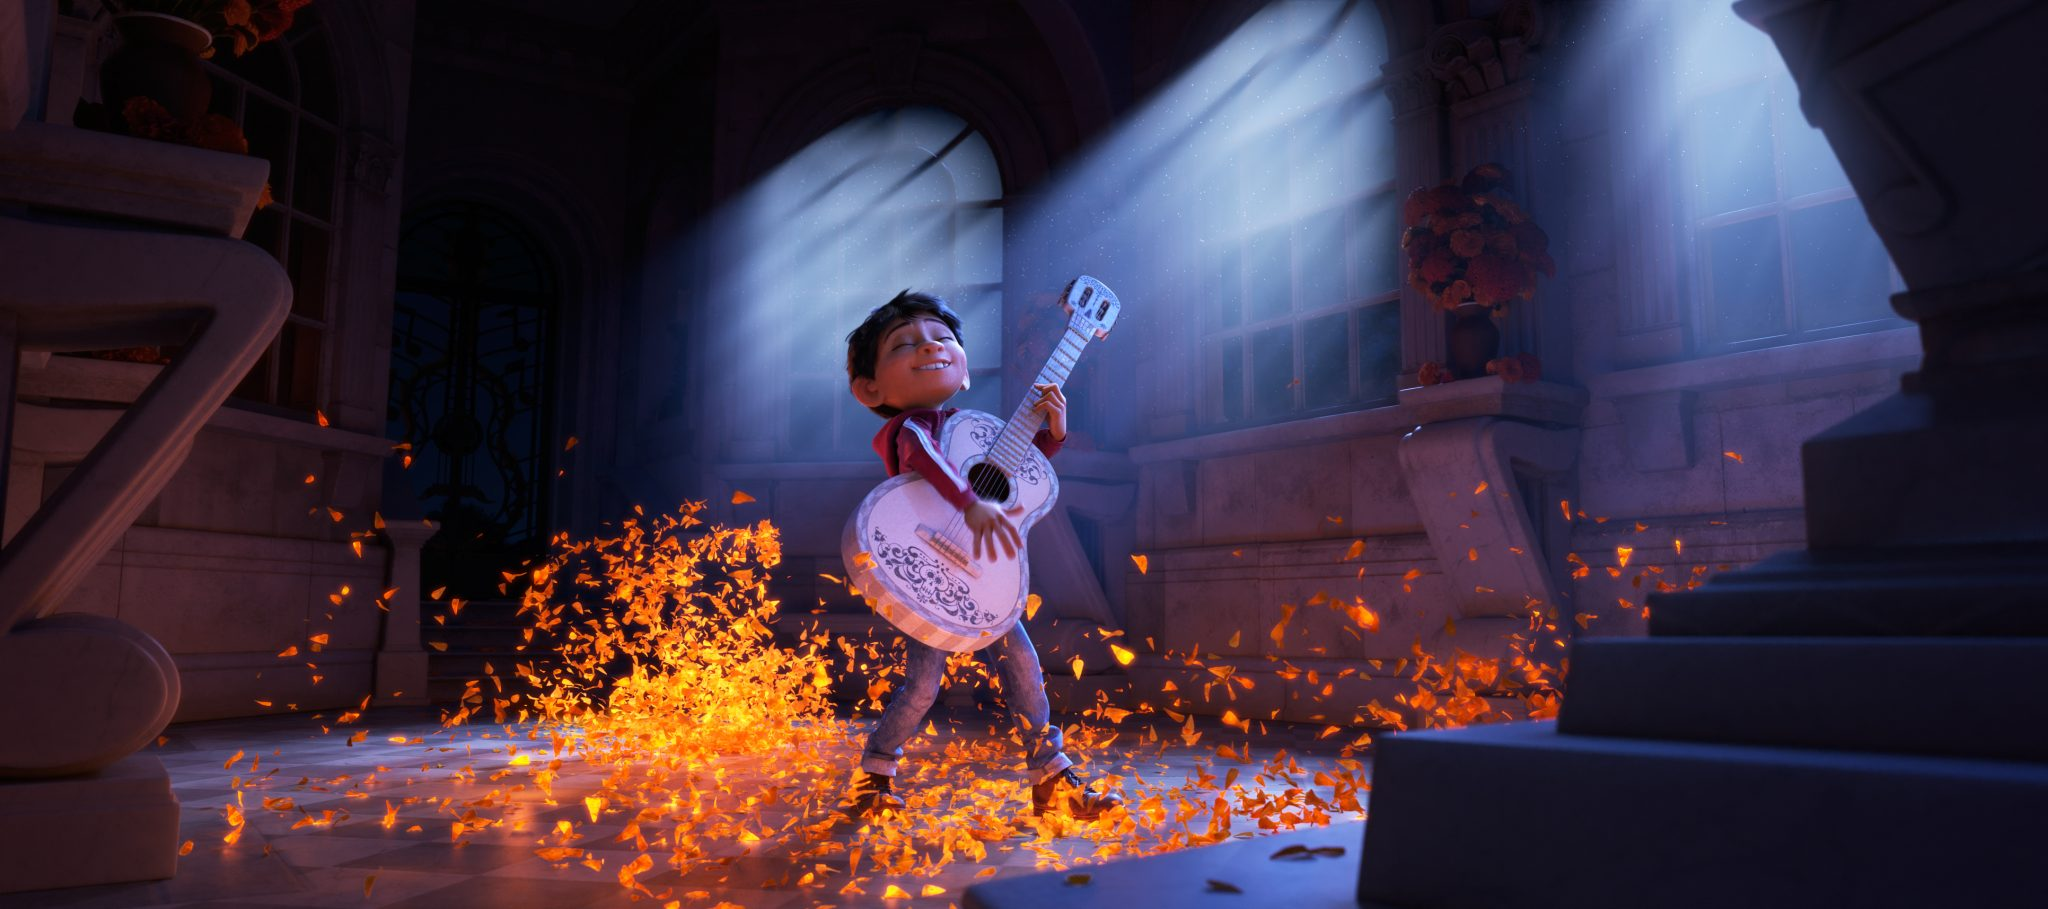 "Disney•Pixar's ""COCO"" Crosses Over Digitally in HD, 4K Ultra HD™ and Movies Anywhere on Feb. 13 and 4K Ultra HD™ & Blu-ray™ on Feb. 27"